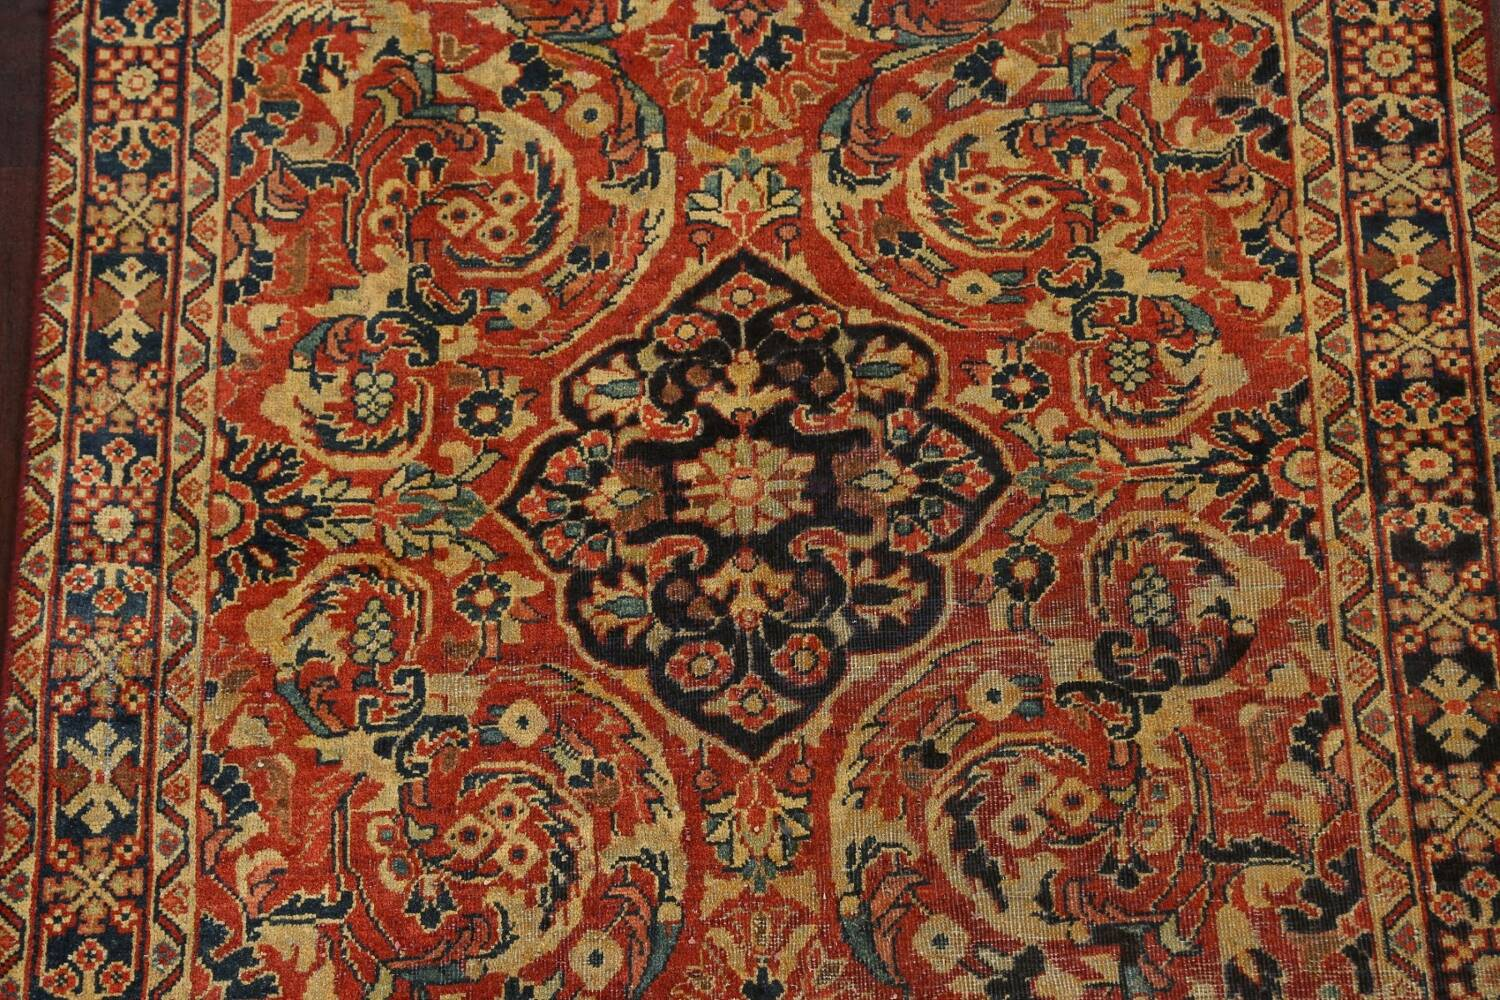 Antique Floral Mahal Persian Area Rug 4x7 image 4